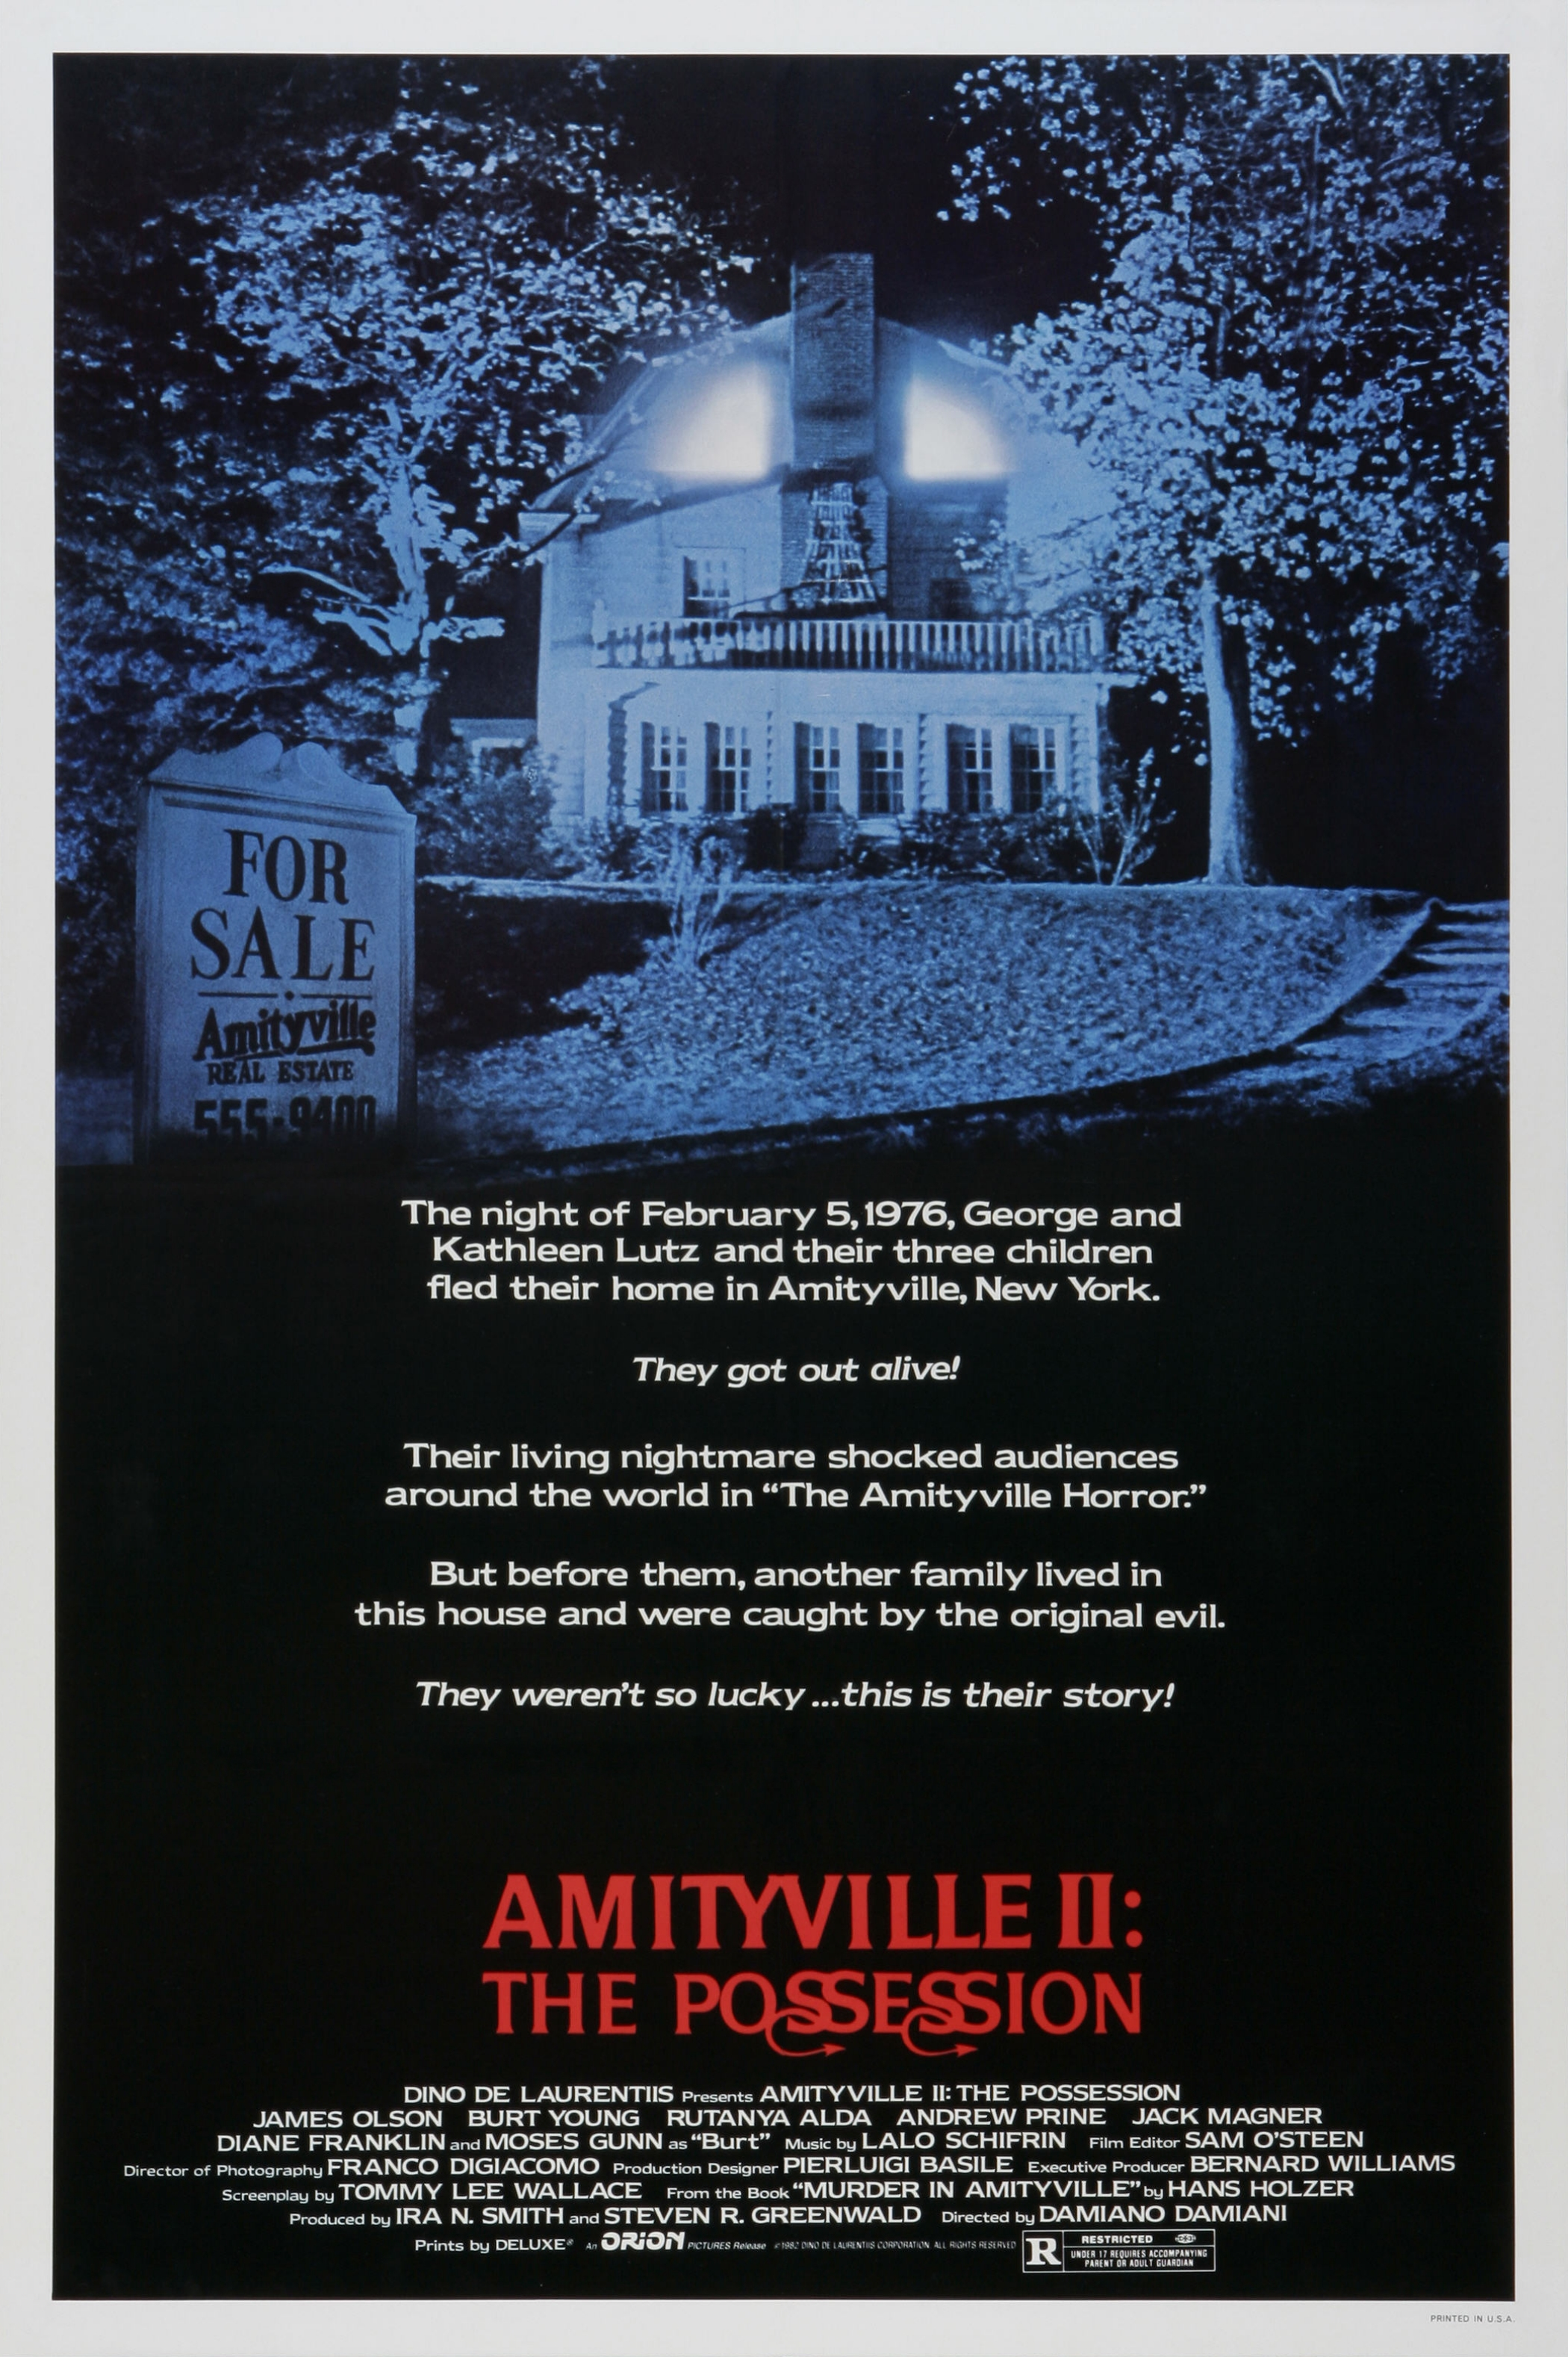 POSTER - AMITYVILL II THE POSSESSION.JPG